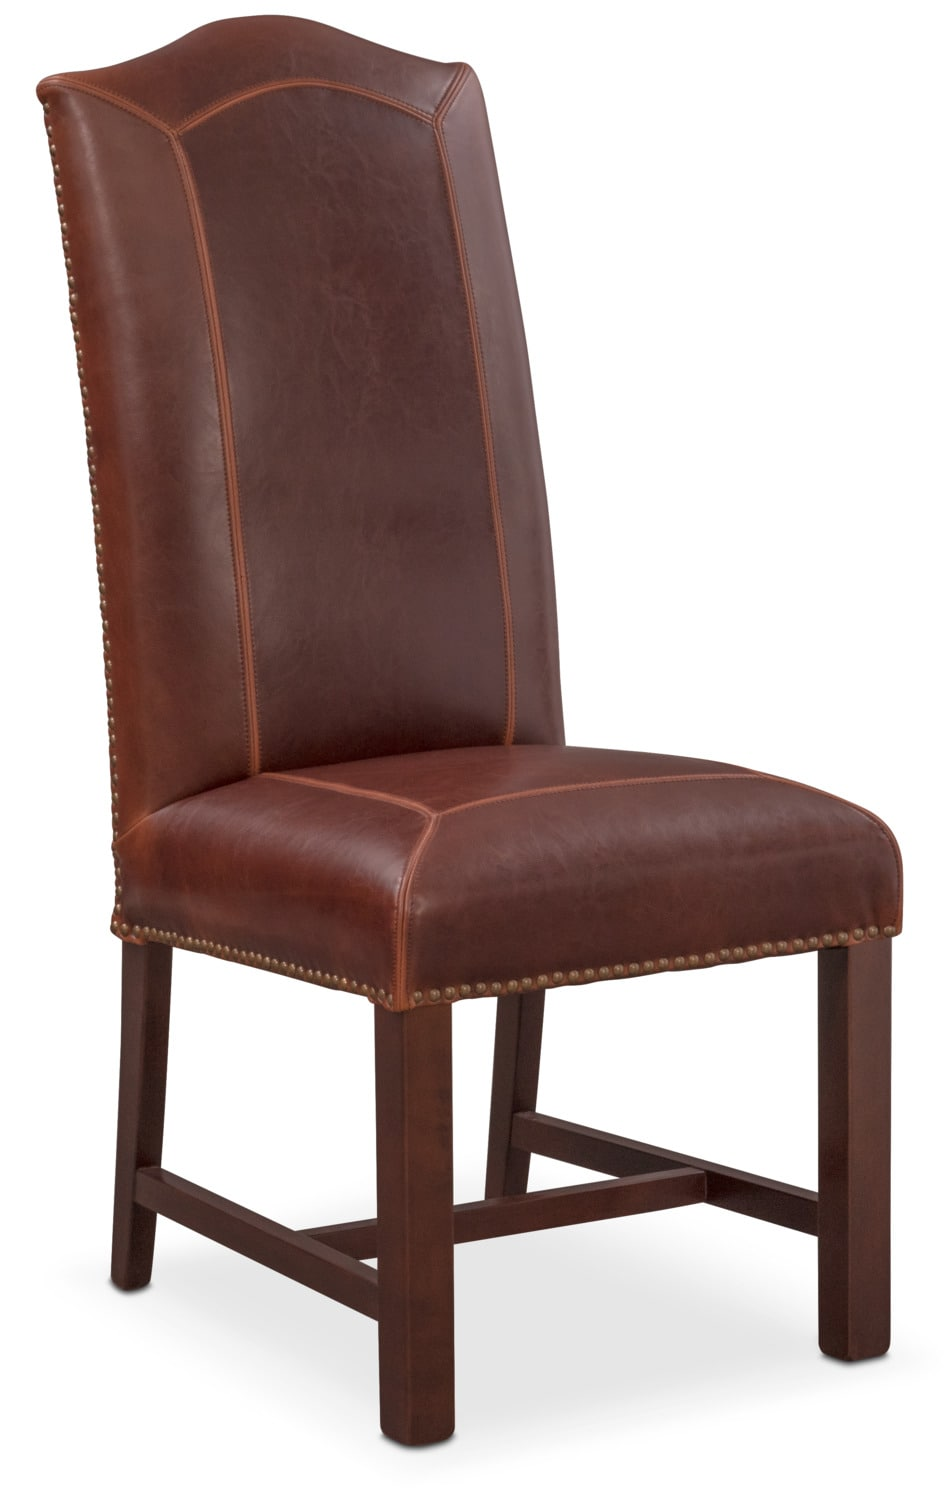 Living Room Furniture - Cloister Side Chair - Brown